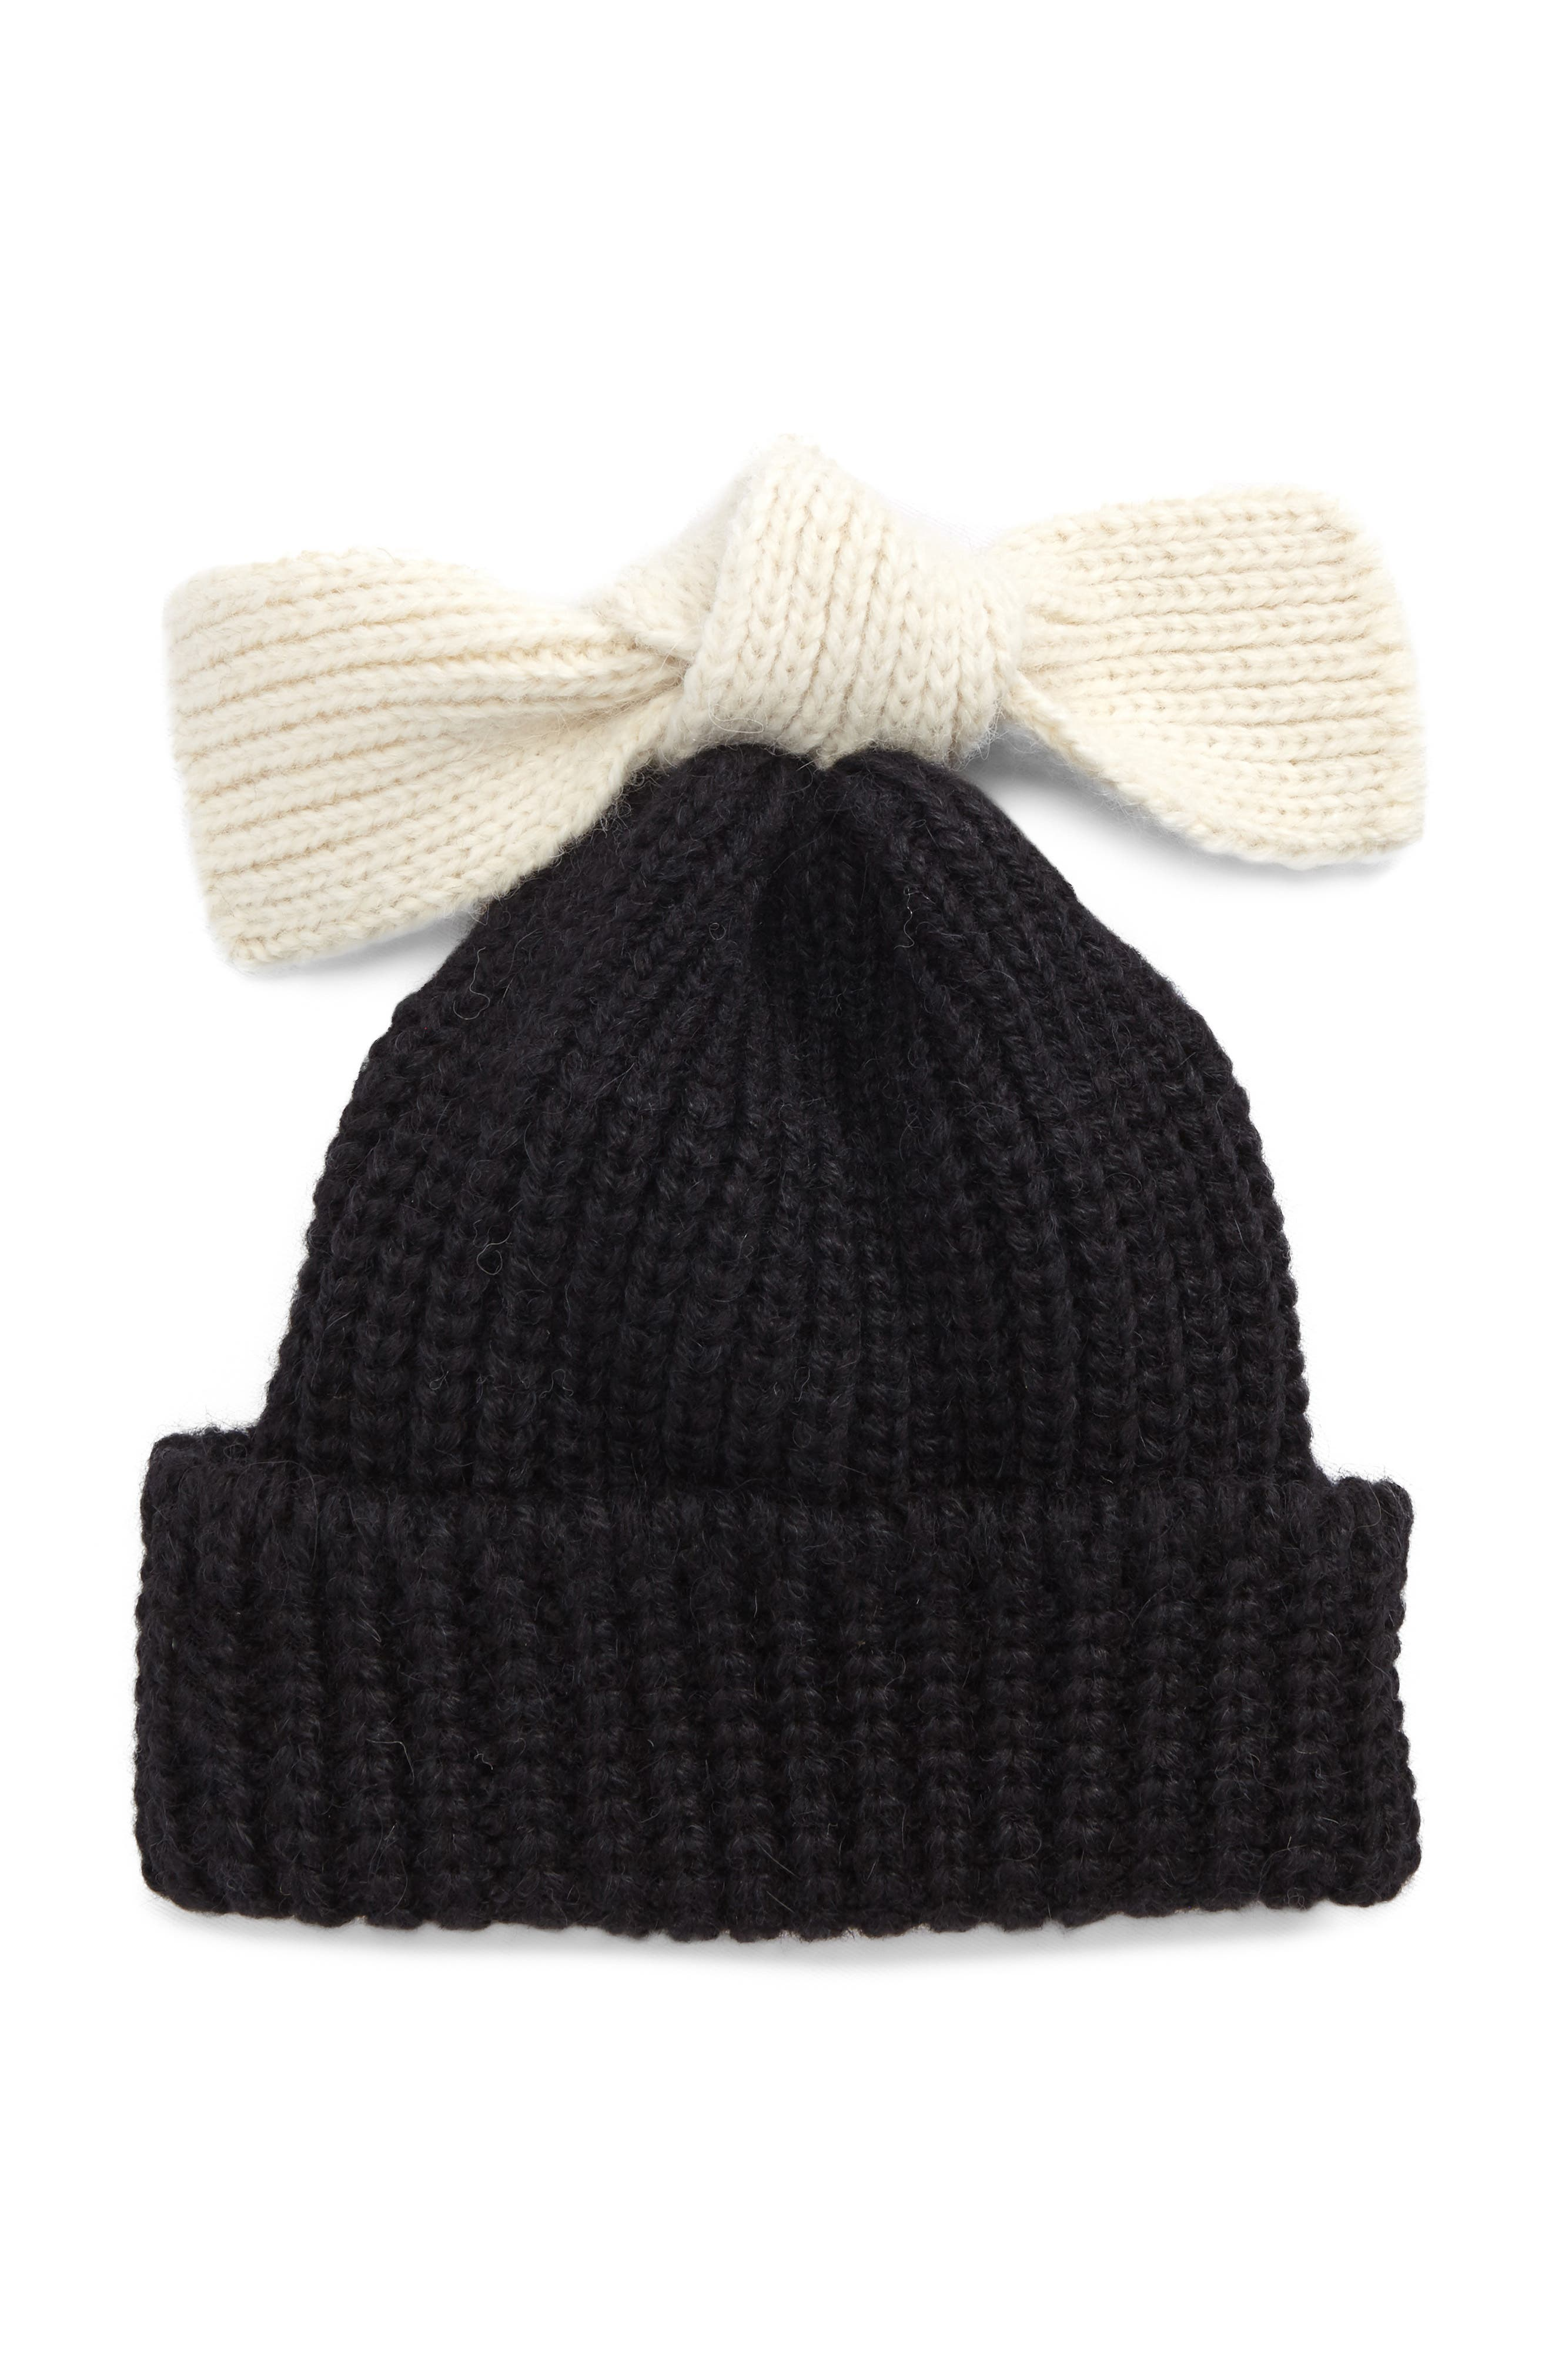 Bow Tie Beanie,                         Main,                         color, Black White